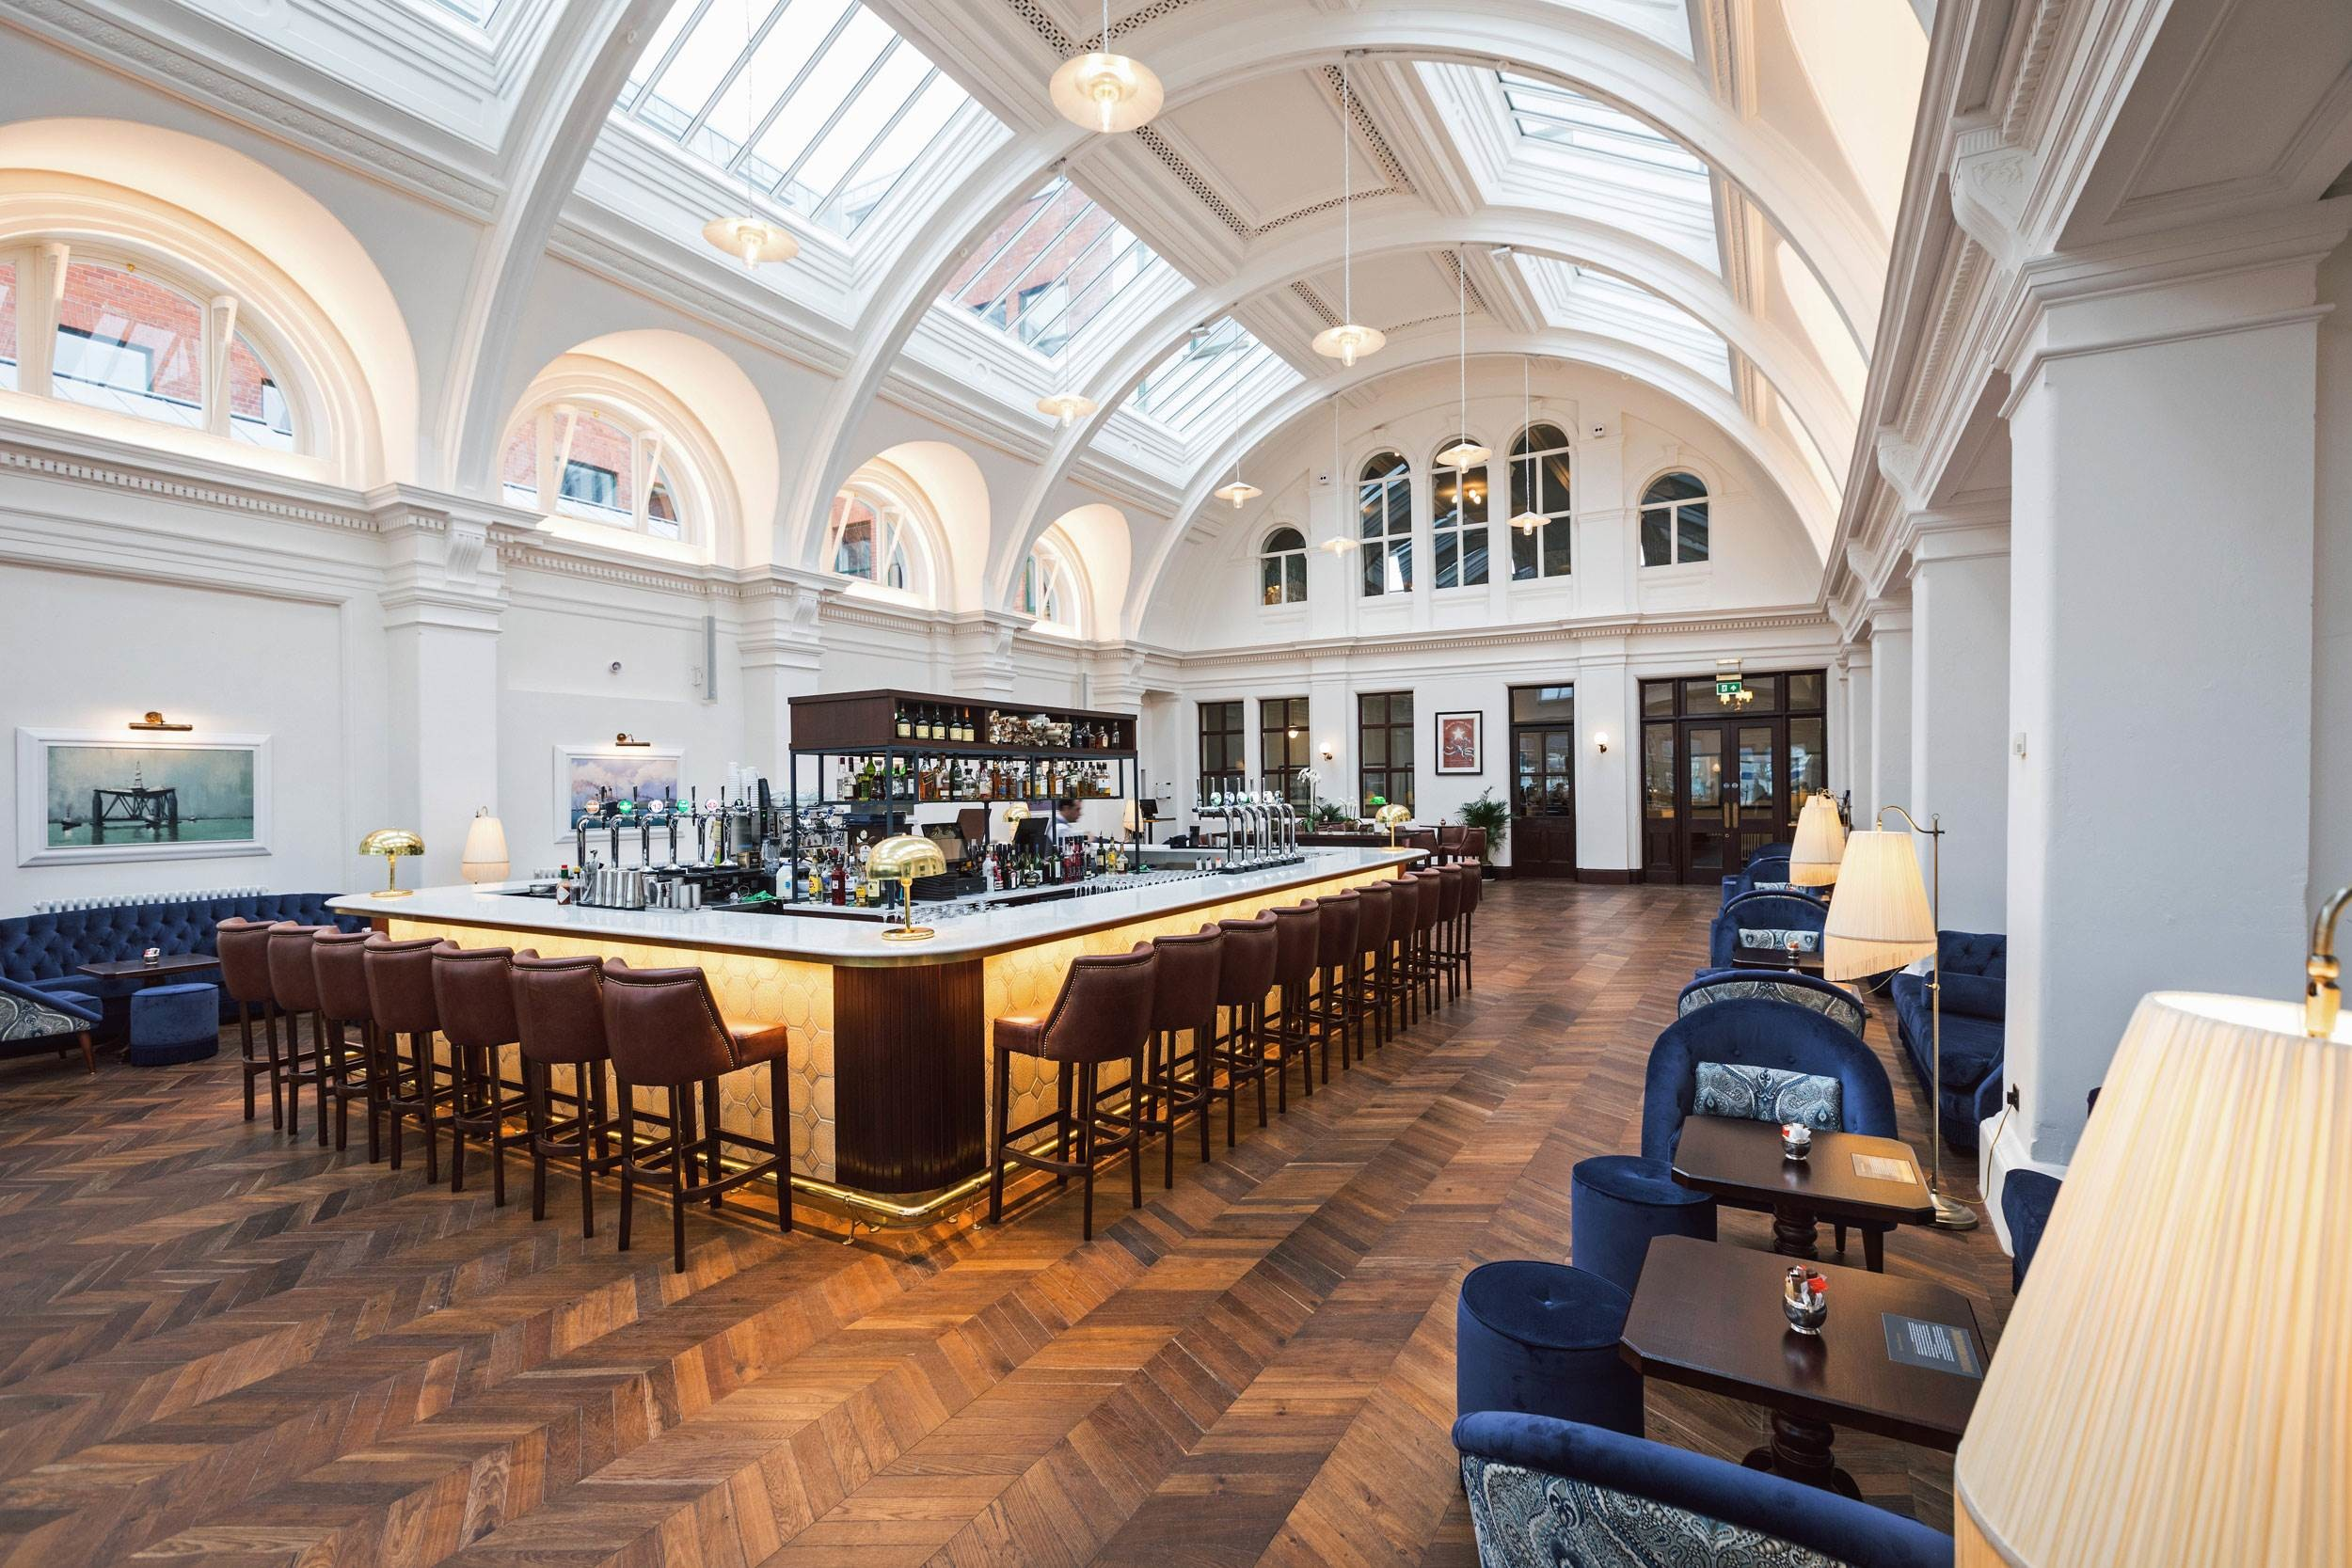 Belfast is experiencing a boom in hotel